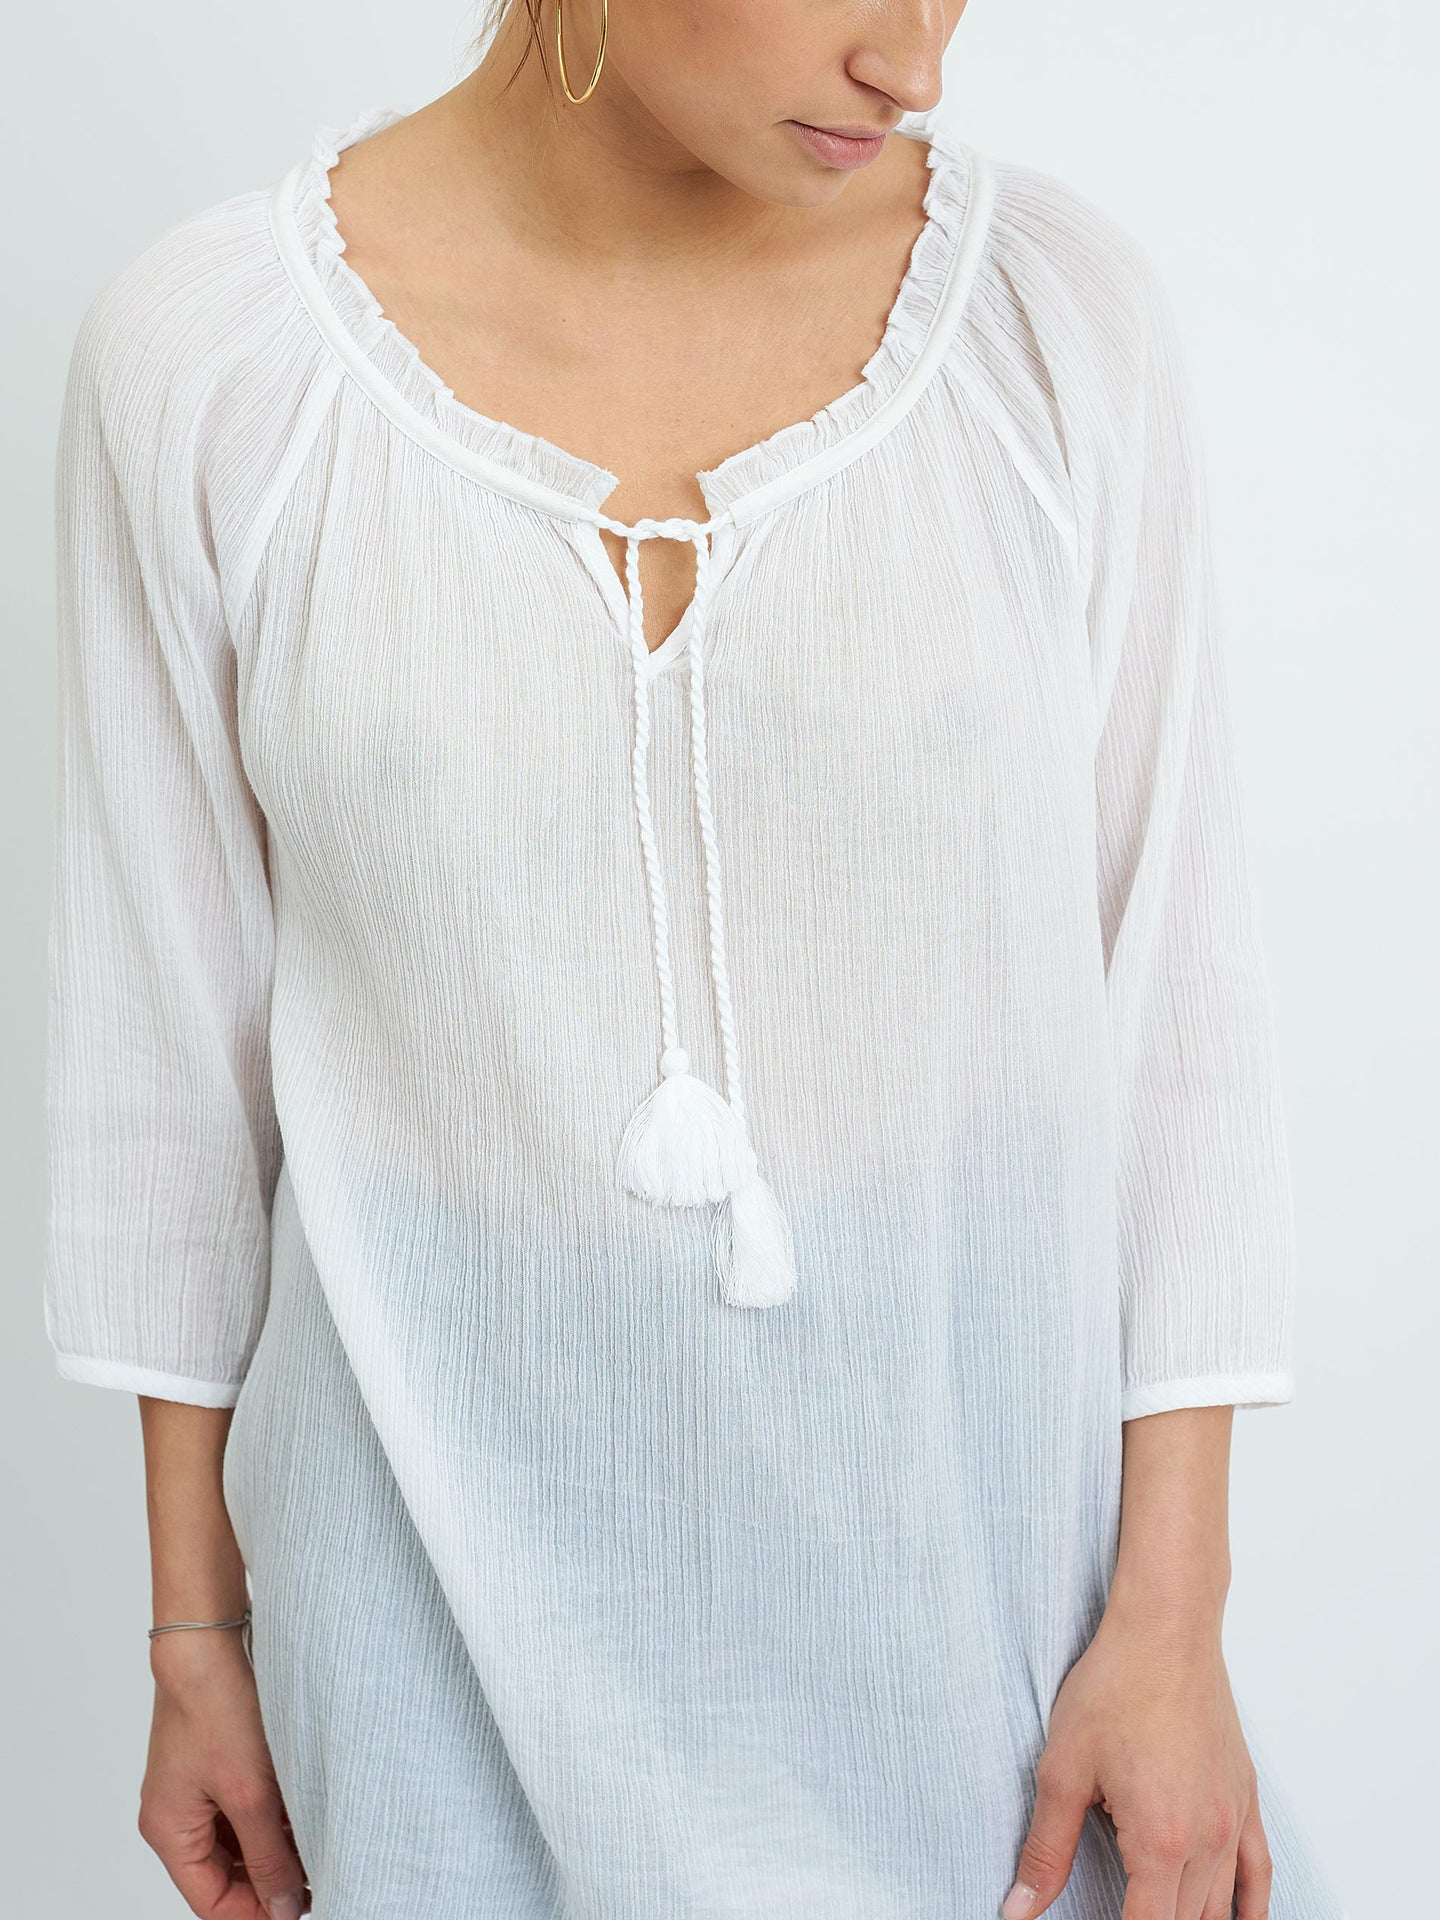 Rosie cheesecloth blouse